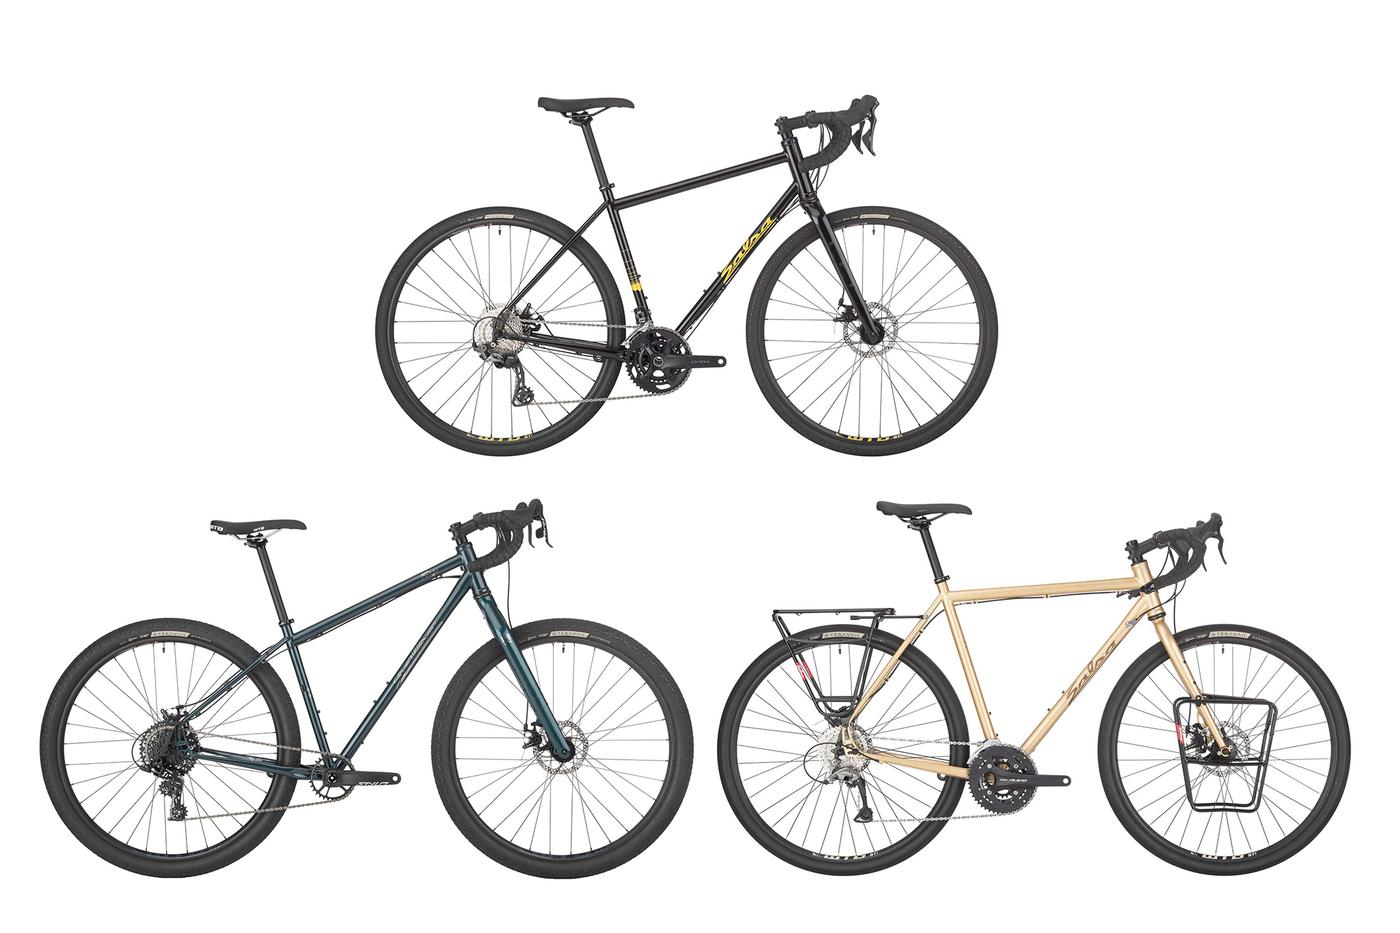 Salsa Updates its Steel Bike Lineup for 2021